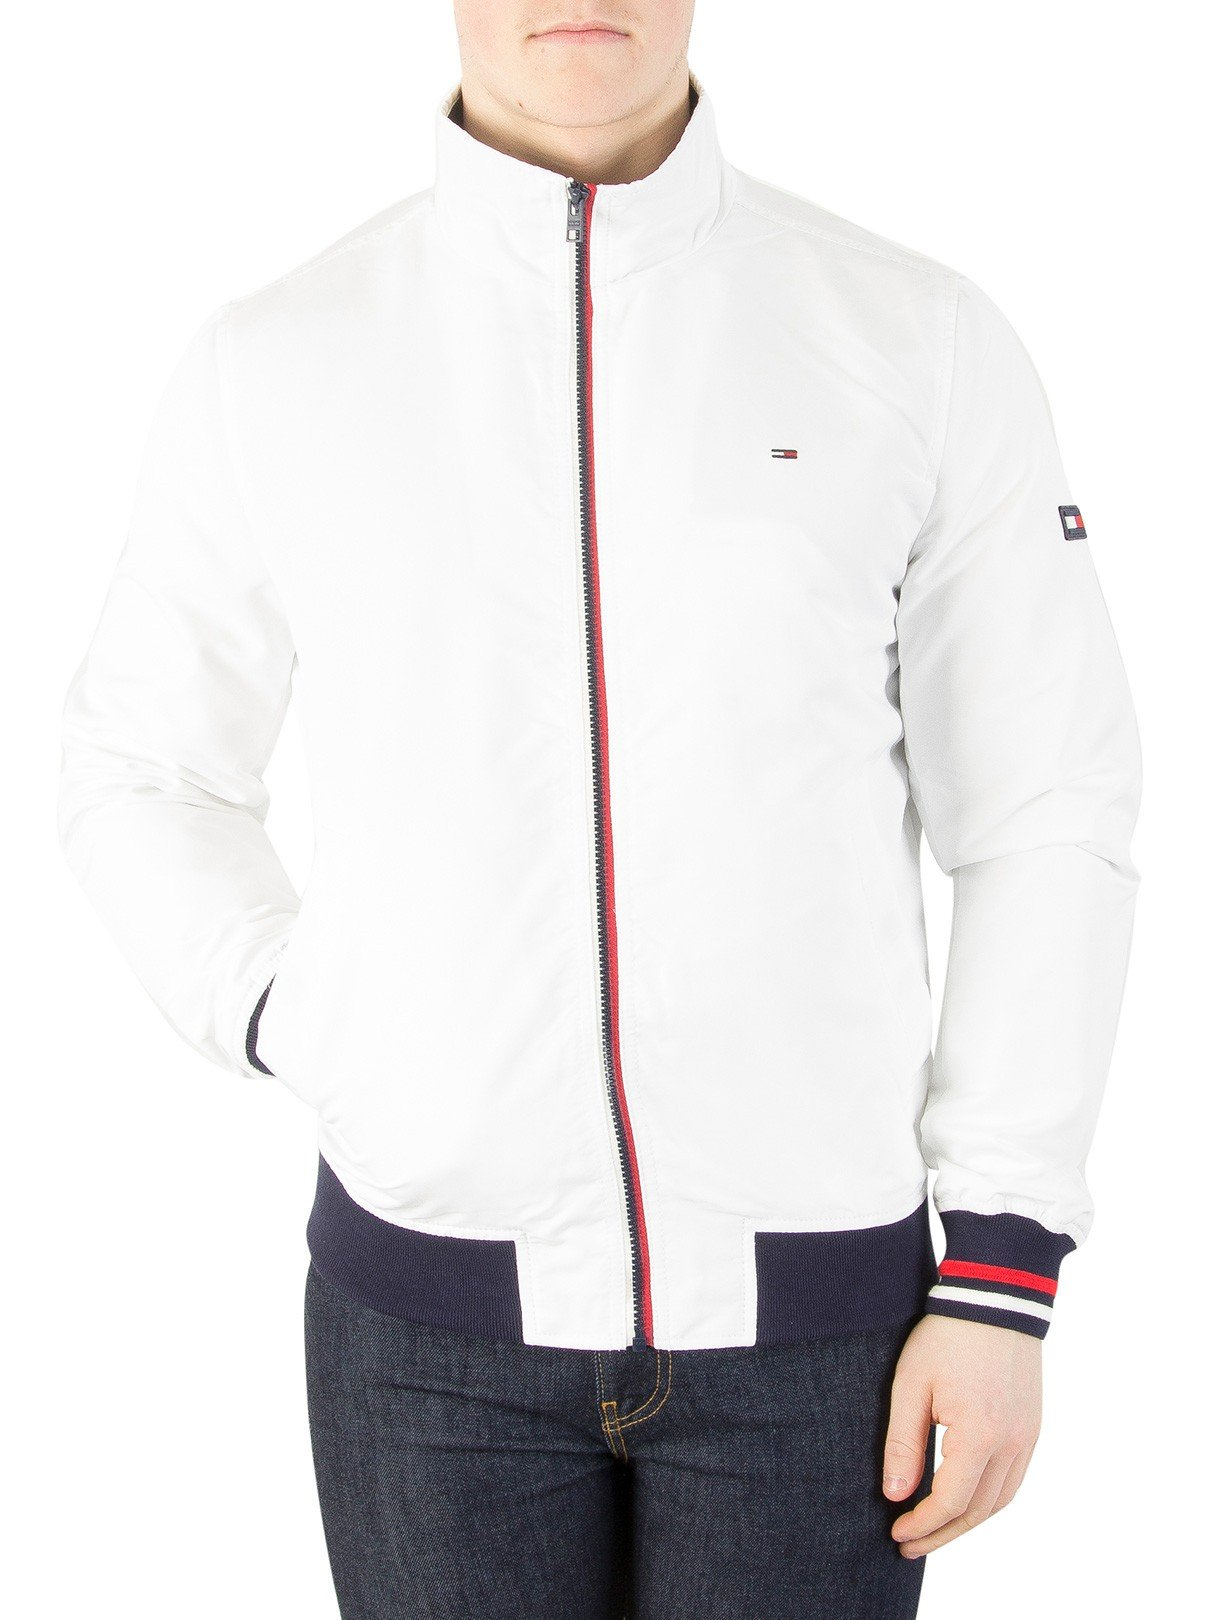 Tommy Jeans Men's Basic Casual Bomber Jacket, White, Large